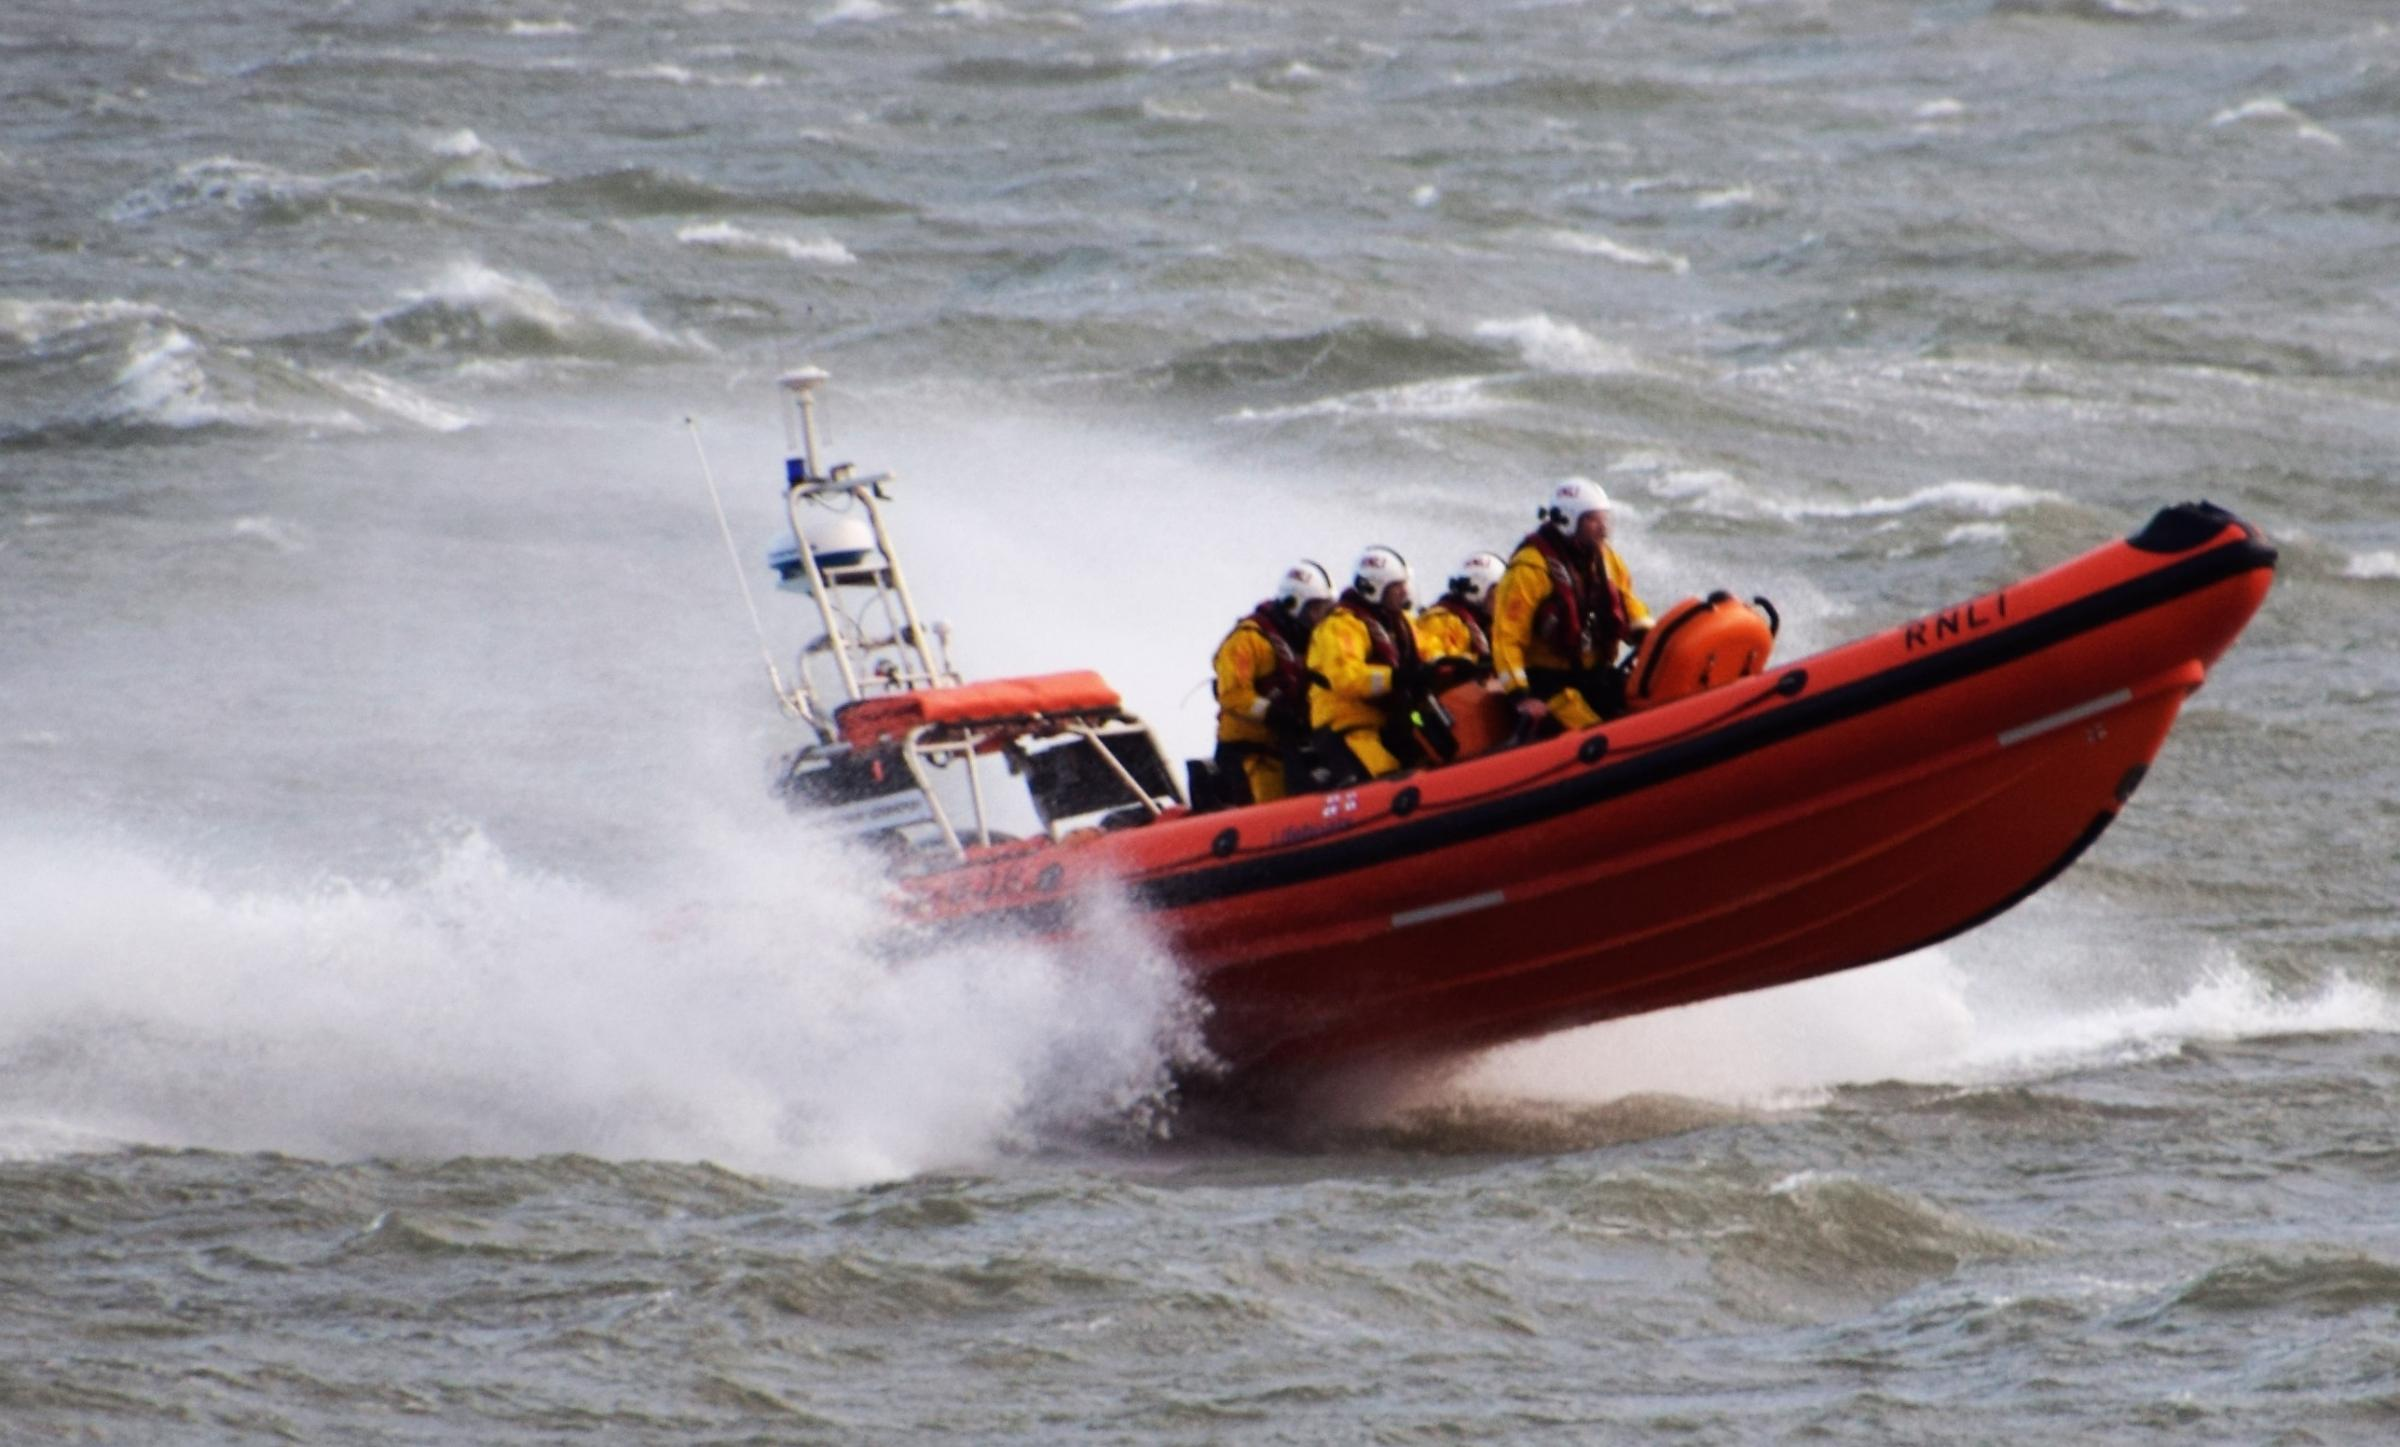 Pictured: The Beaumaris Lifeboat. Picture by Dave Burke.